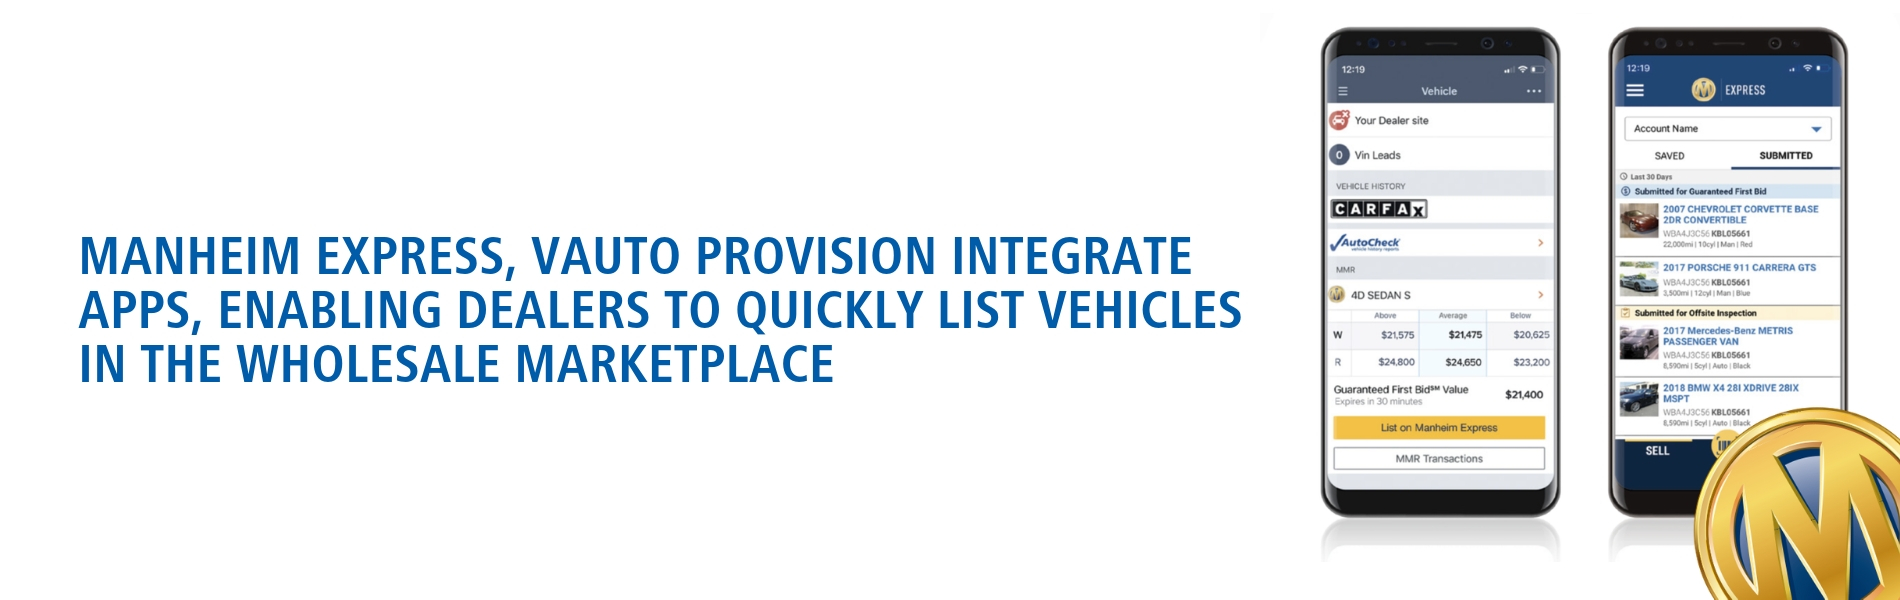 Manheim Express, vAuto Provision Integrate Apps, Enabling Dealers to Quickly List Vehicles in the Wholesale Marketplace